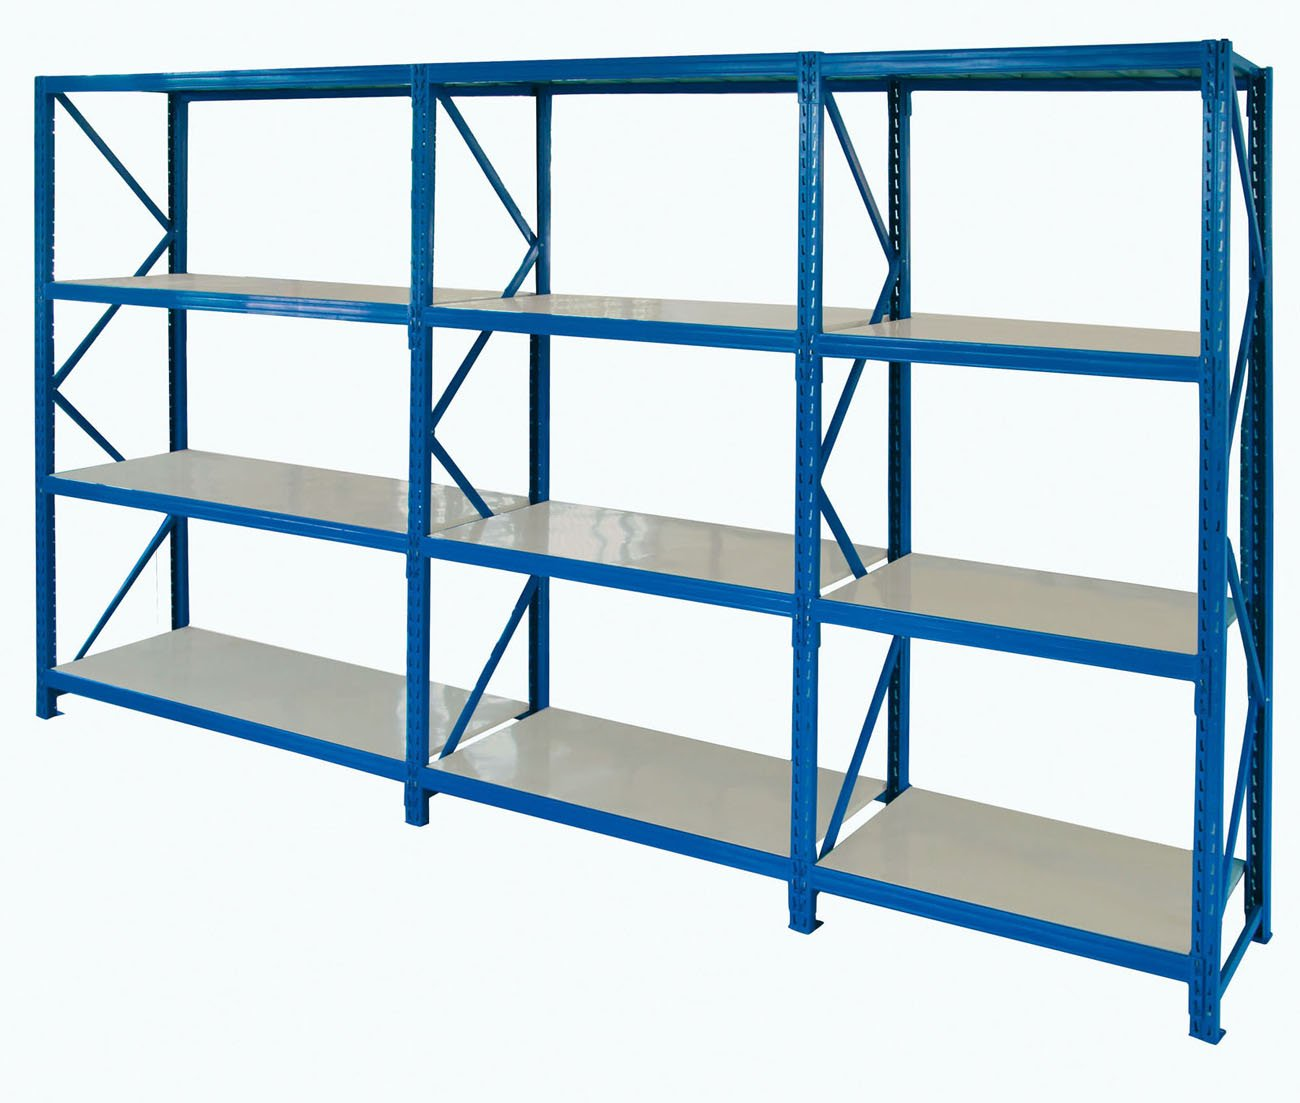 Storage Racks Of High Quality For Storing Goods In House,Office ...